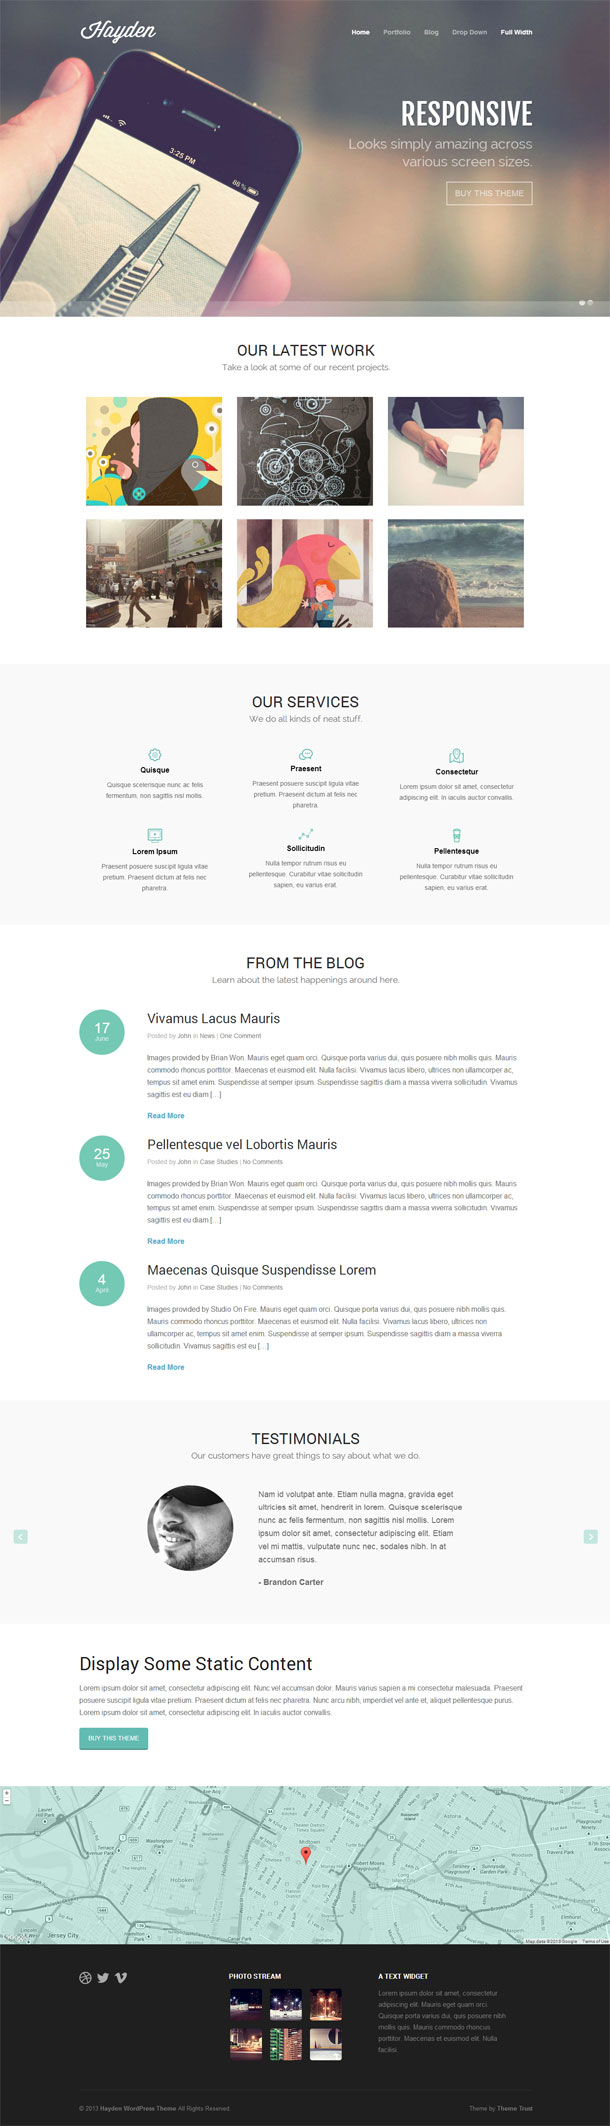 Hayden Awesome Multimedia WordPress Theme with Slider Image